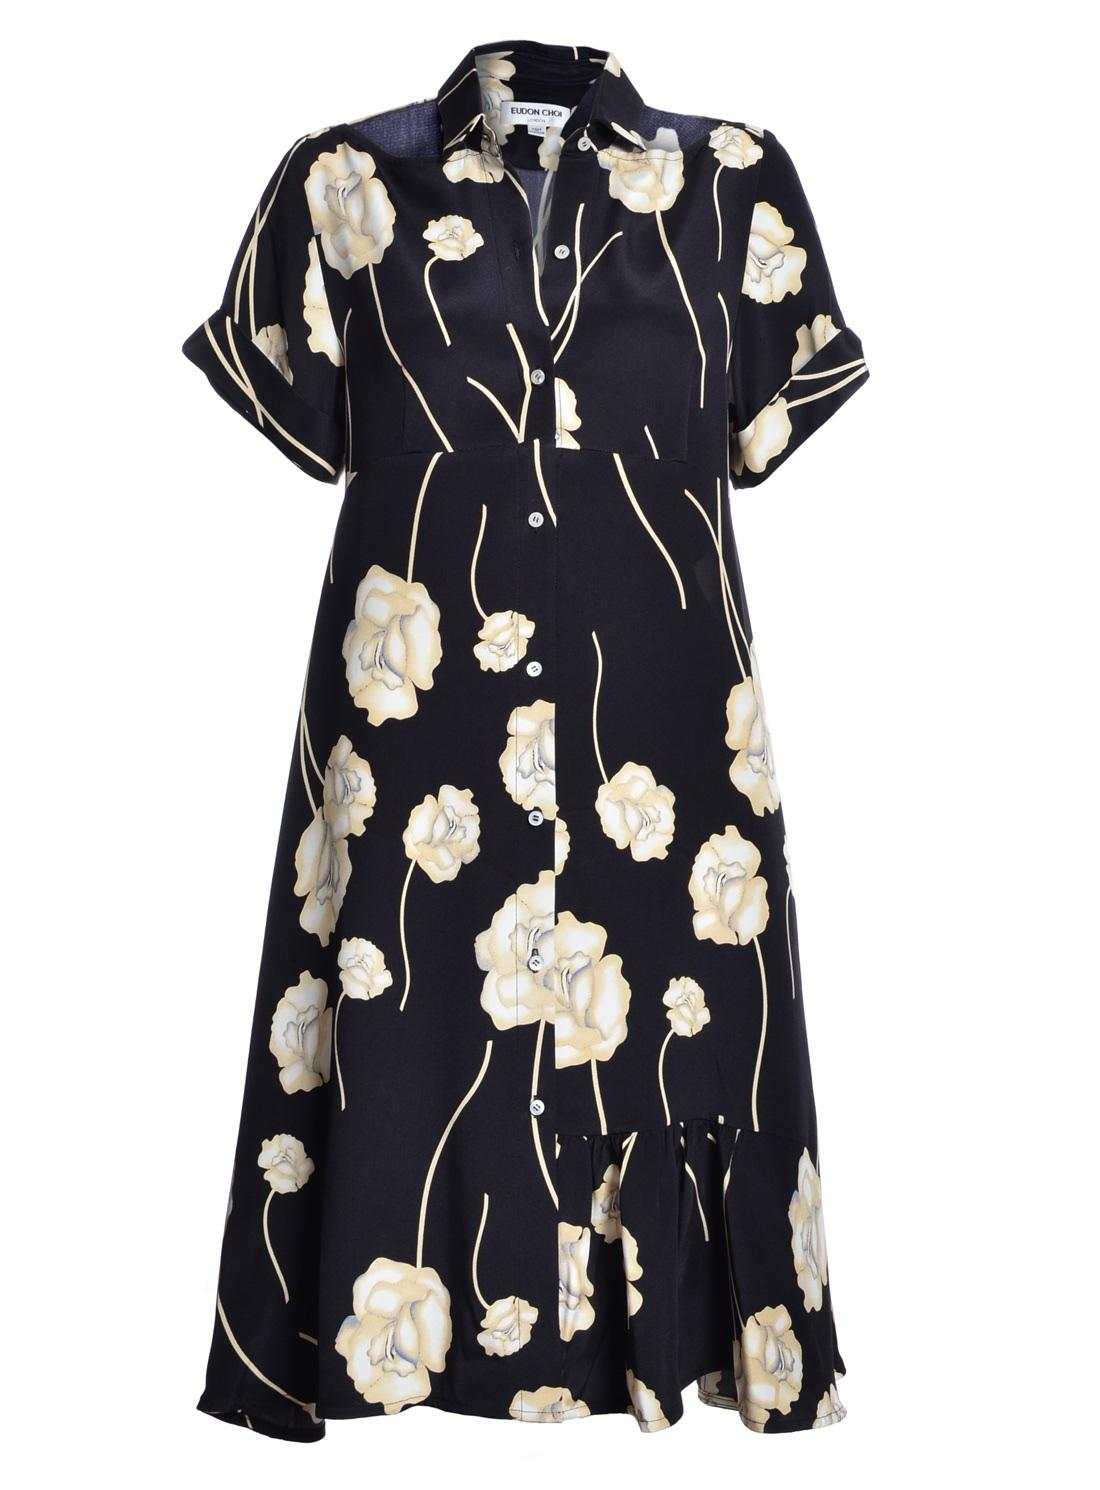 Liuila Black Floral Shirt Dress by Eudon Choi